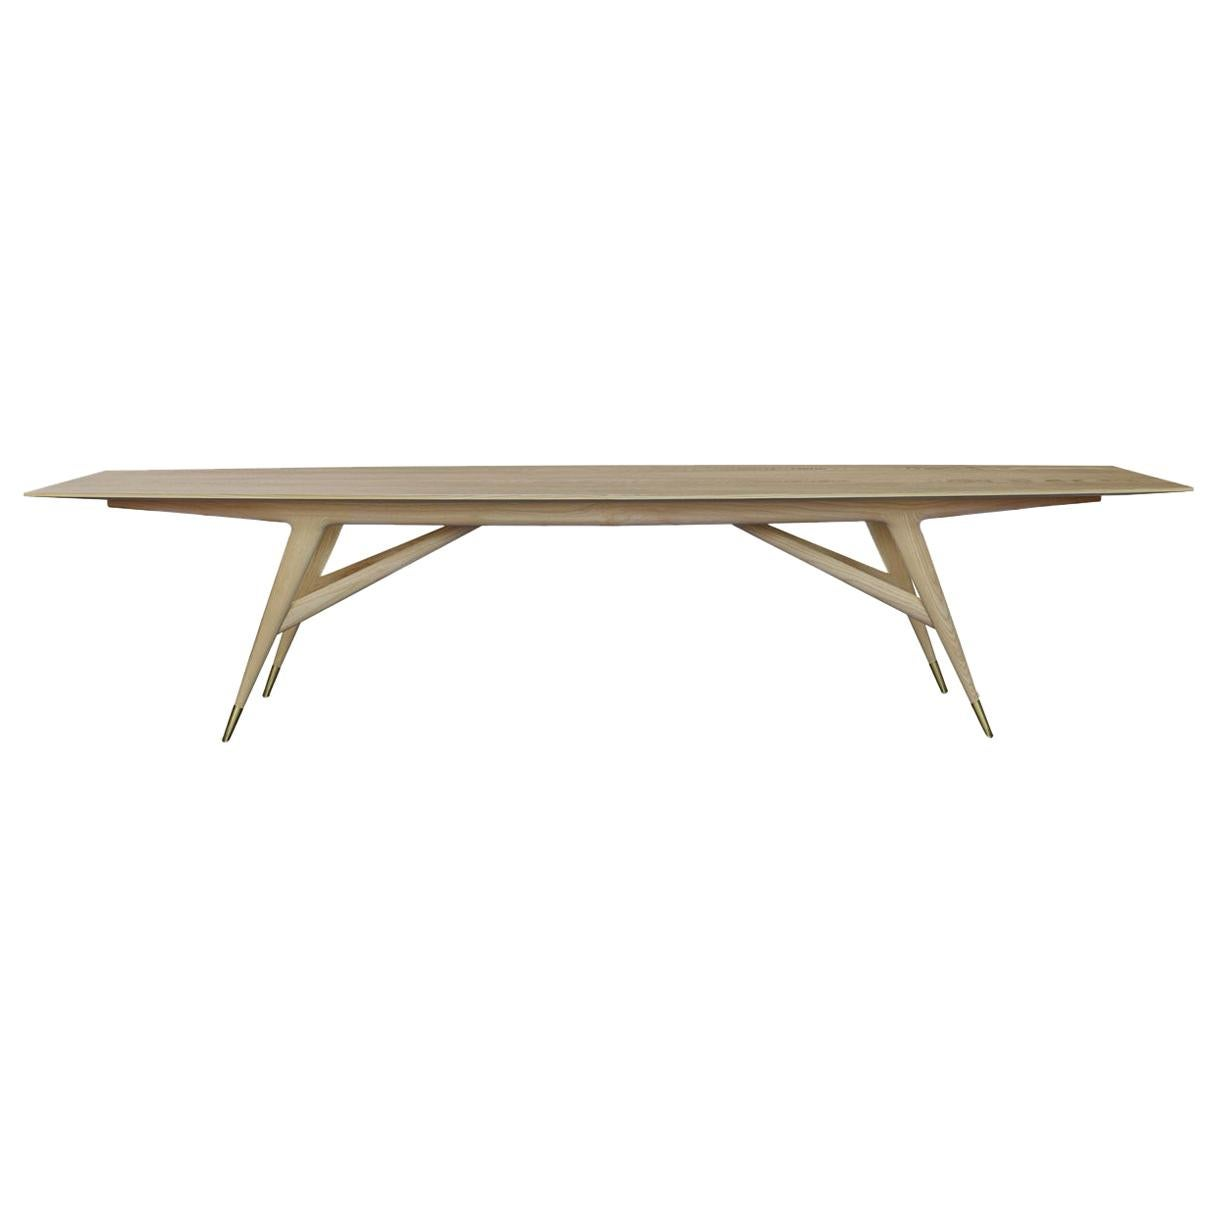 """Molteni&C D.859.1B Dining or Conference 126"""" Table in Ash Wood by Gio Ponti"""